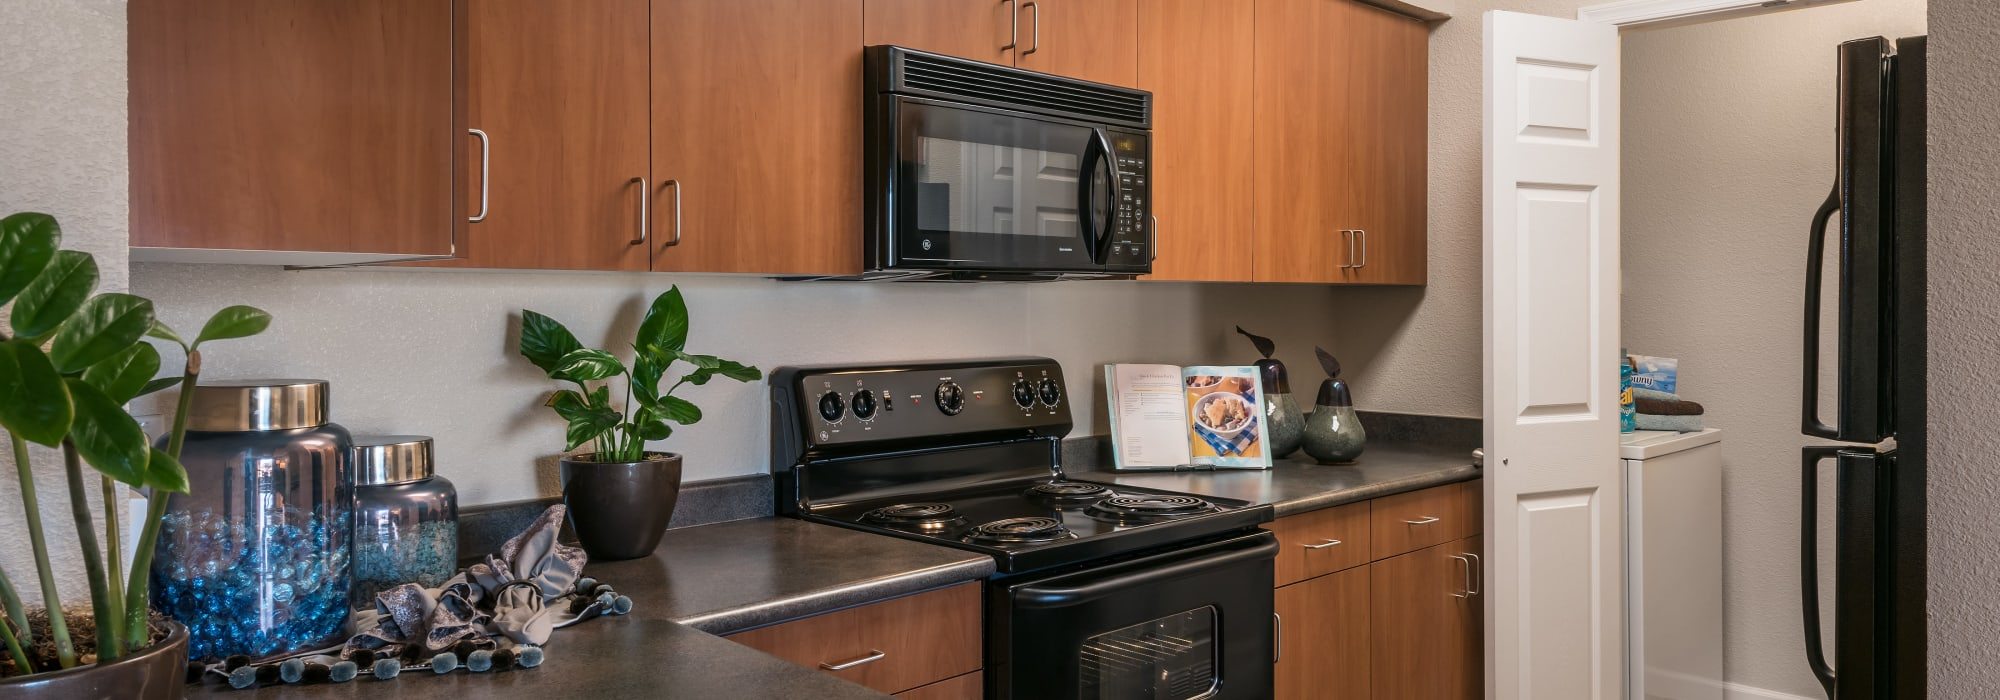 Apartments with luxury kitchens at Azul at Spectrum in Gilbert, Arizona